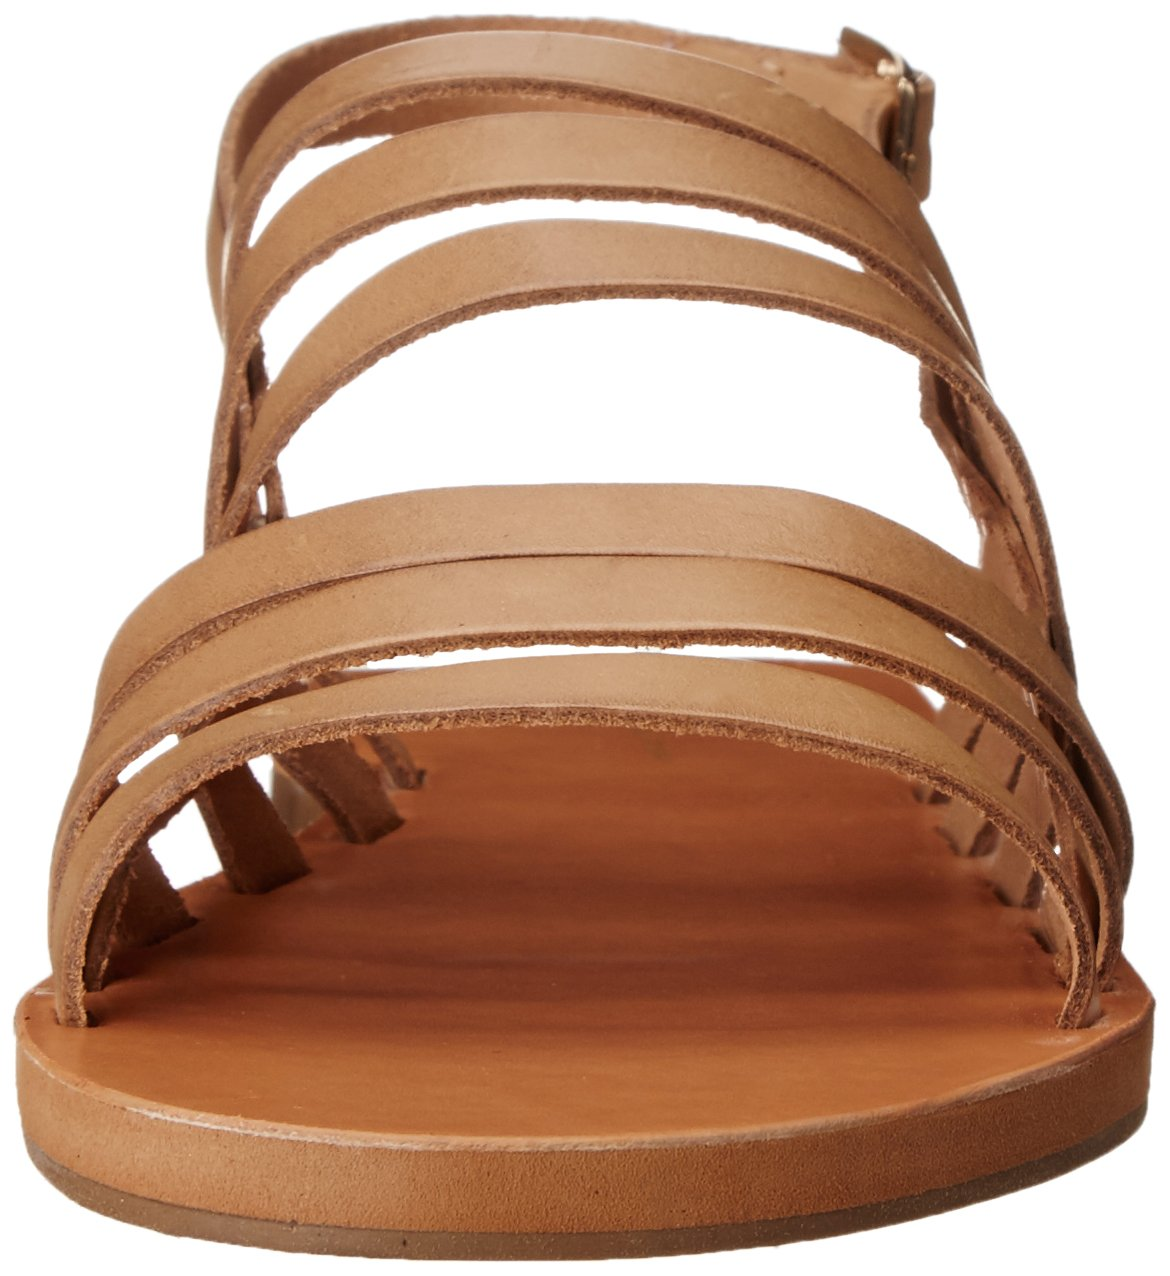 BC Footwear Tan, Women's Teacup Dress Sandal, Tan, Footwear 7 M US B015INTPH2 6 B(M) US|Tan 076914